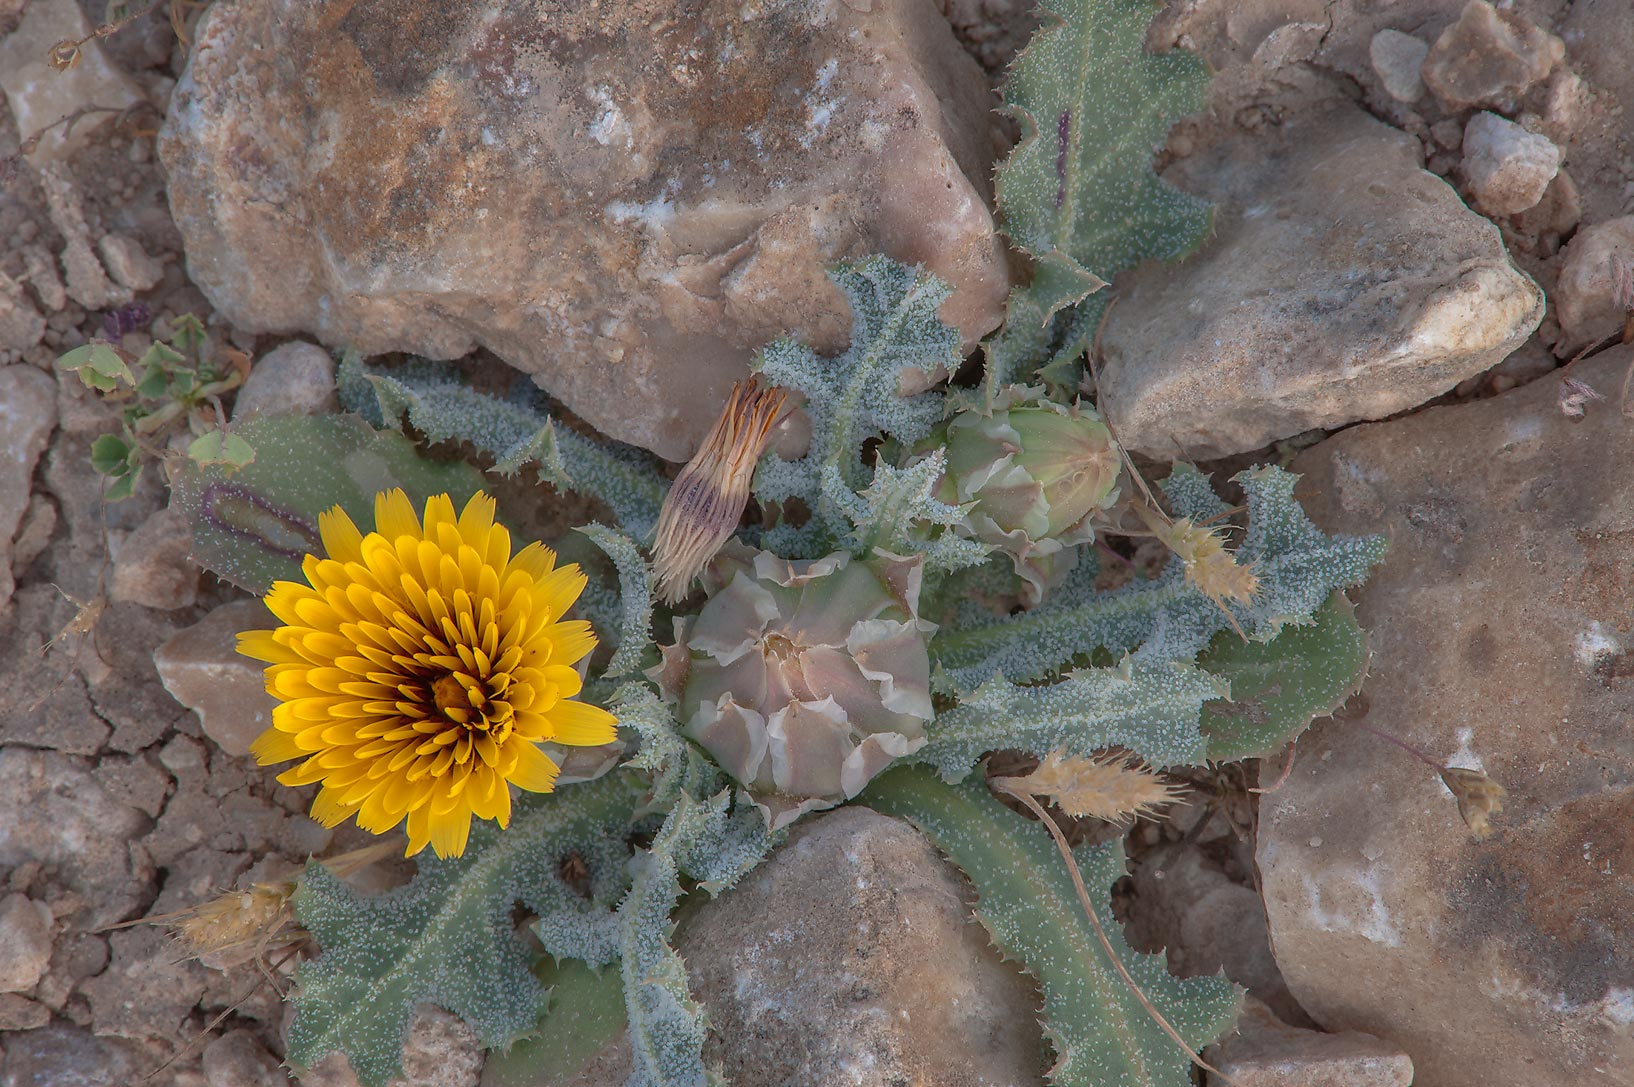 Blooming plant of false sowthistle (Reichardia...of Al Magdah farms. Northern Qatar